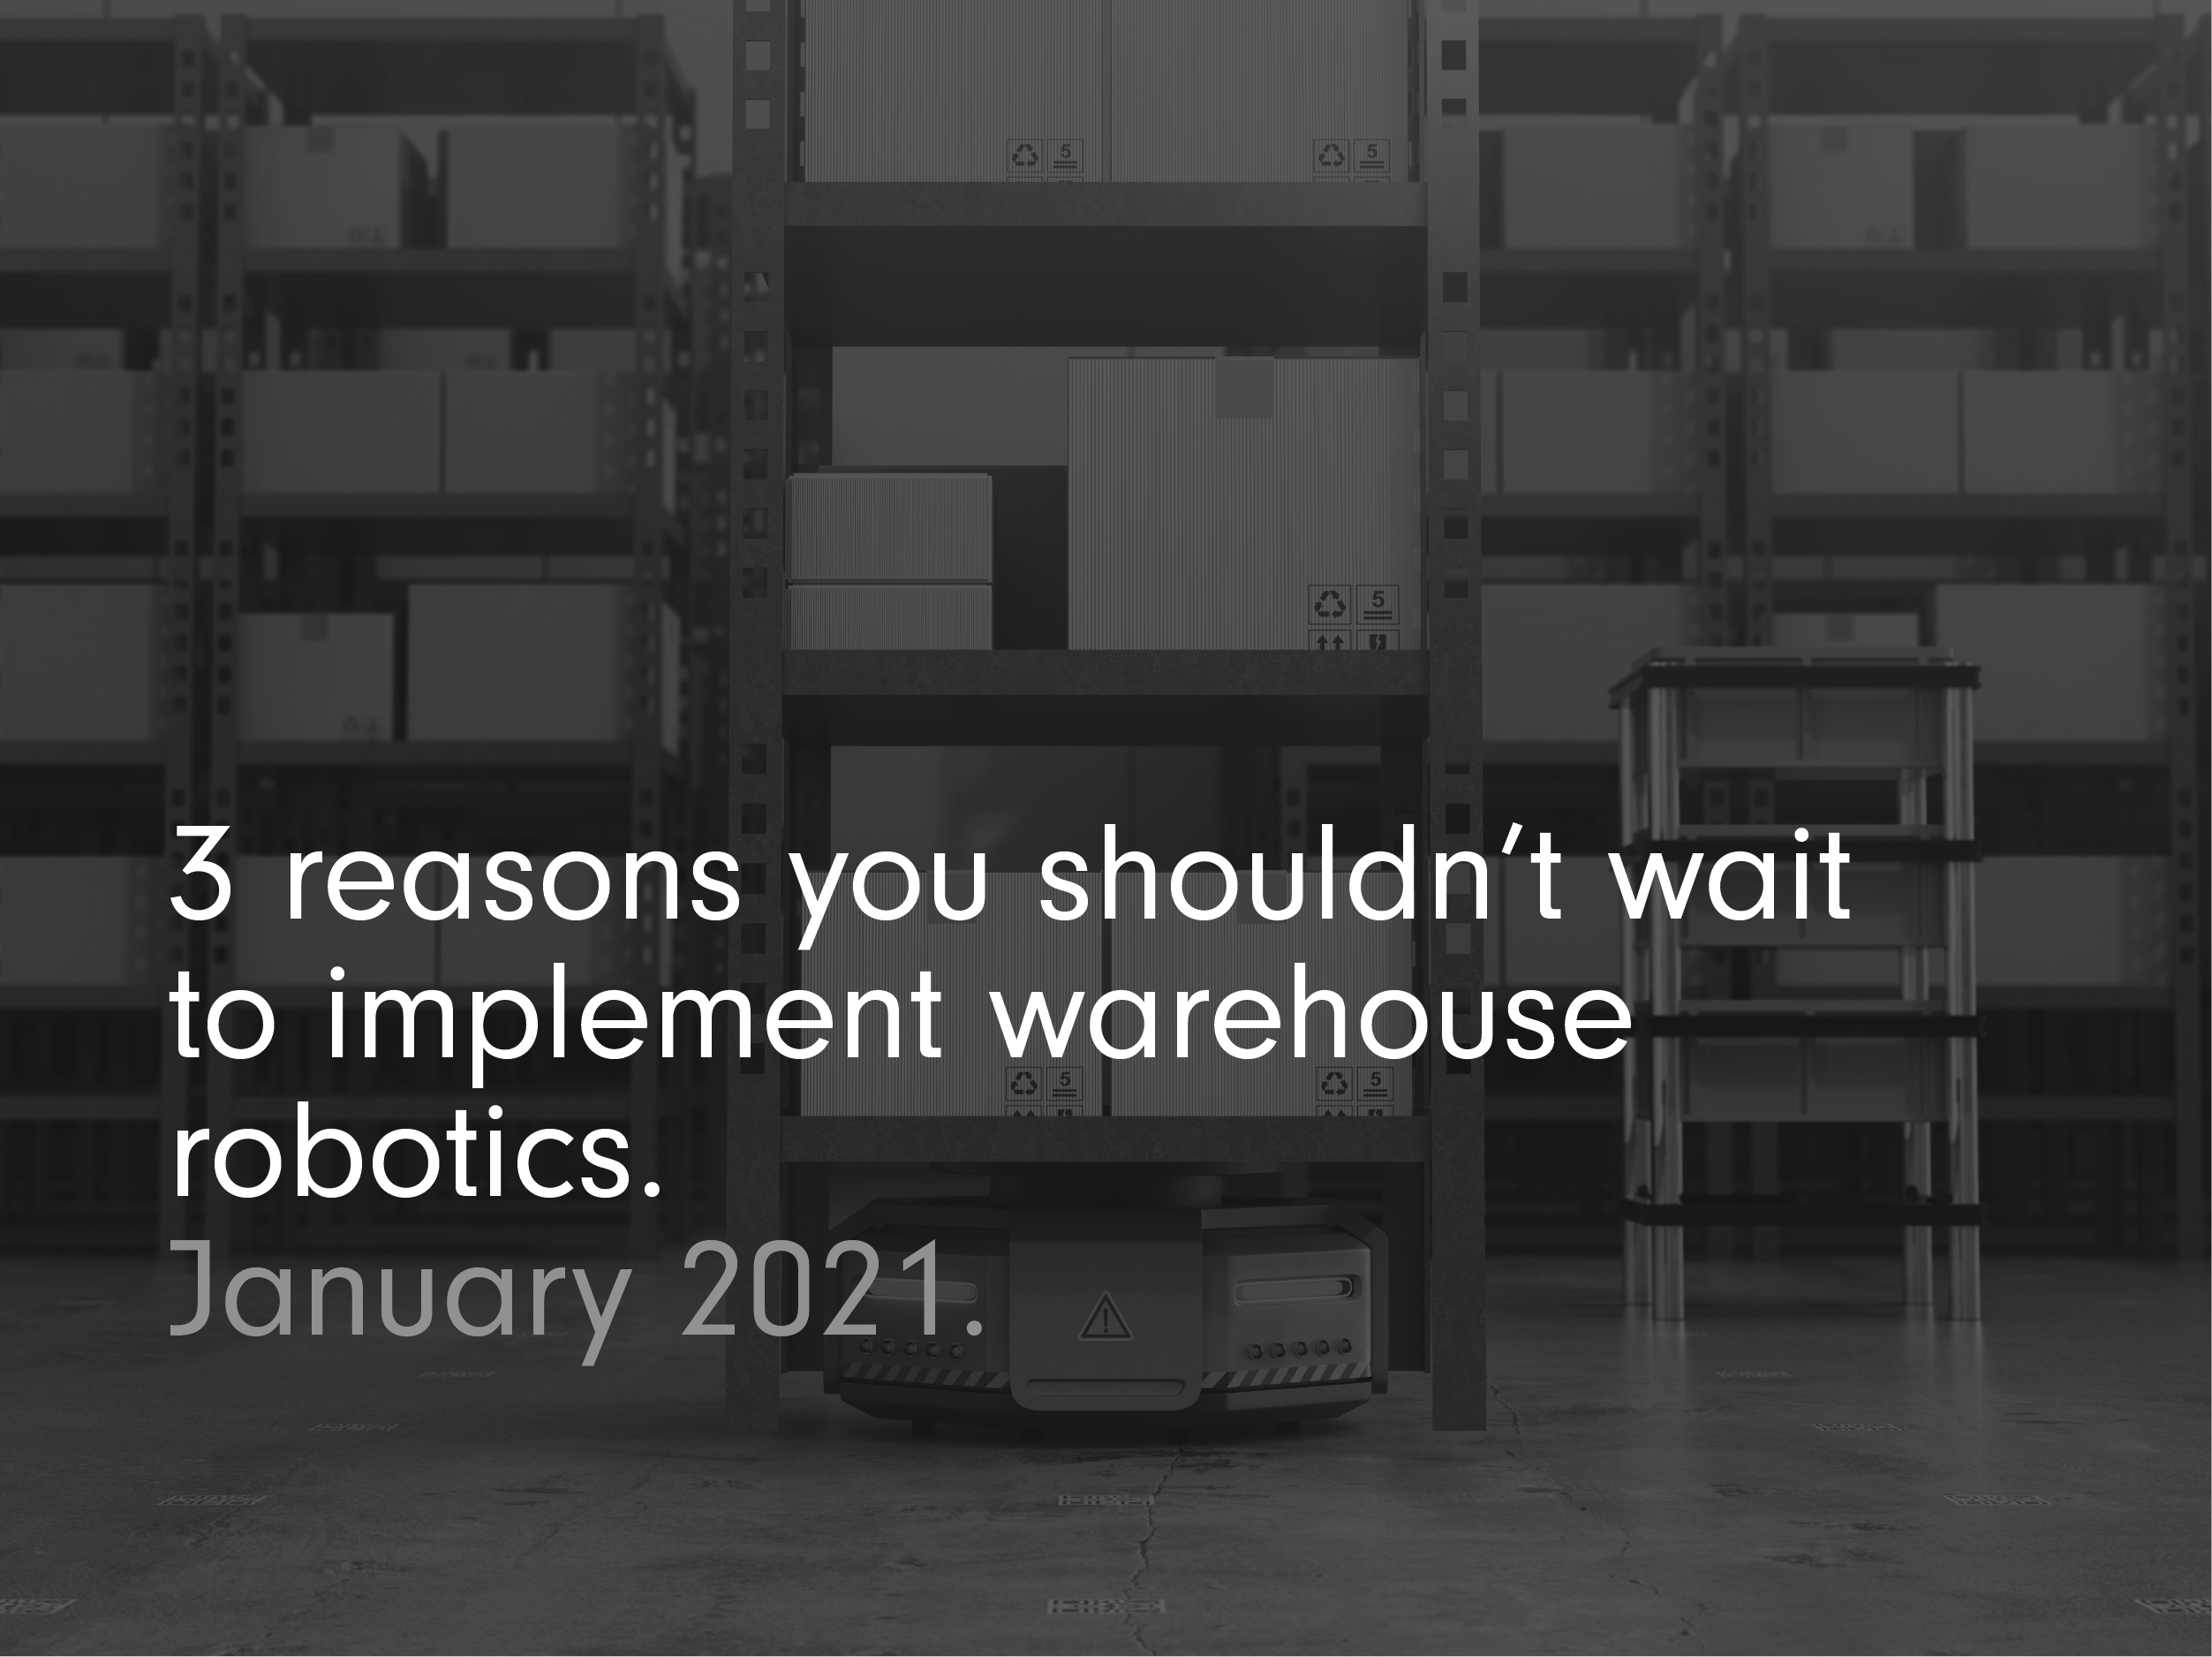 3 Reasons You Shouldn't Wait to Implement Warehouse Robots.